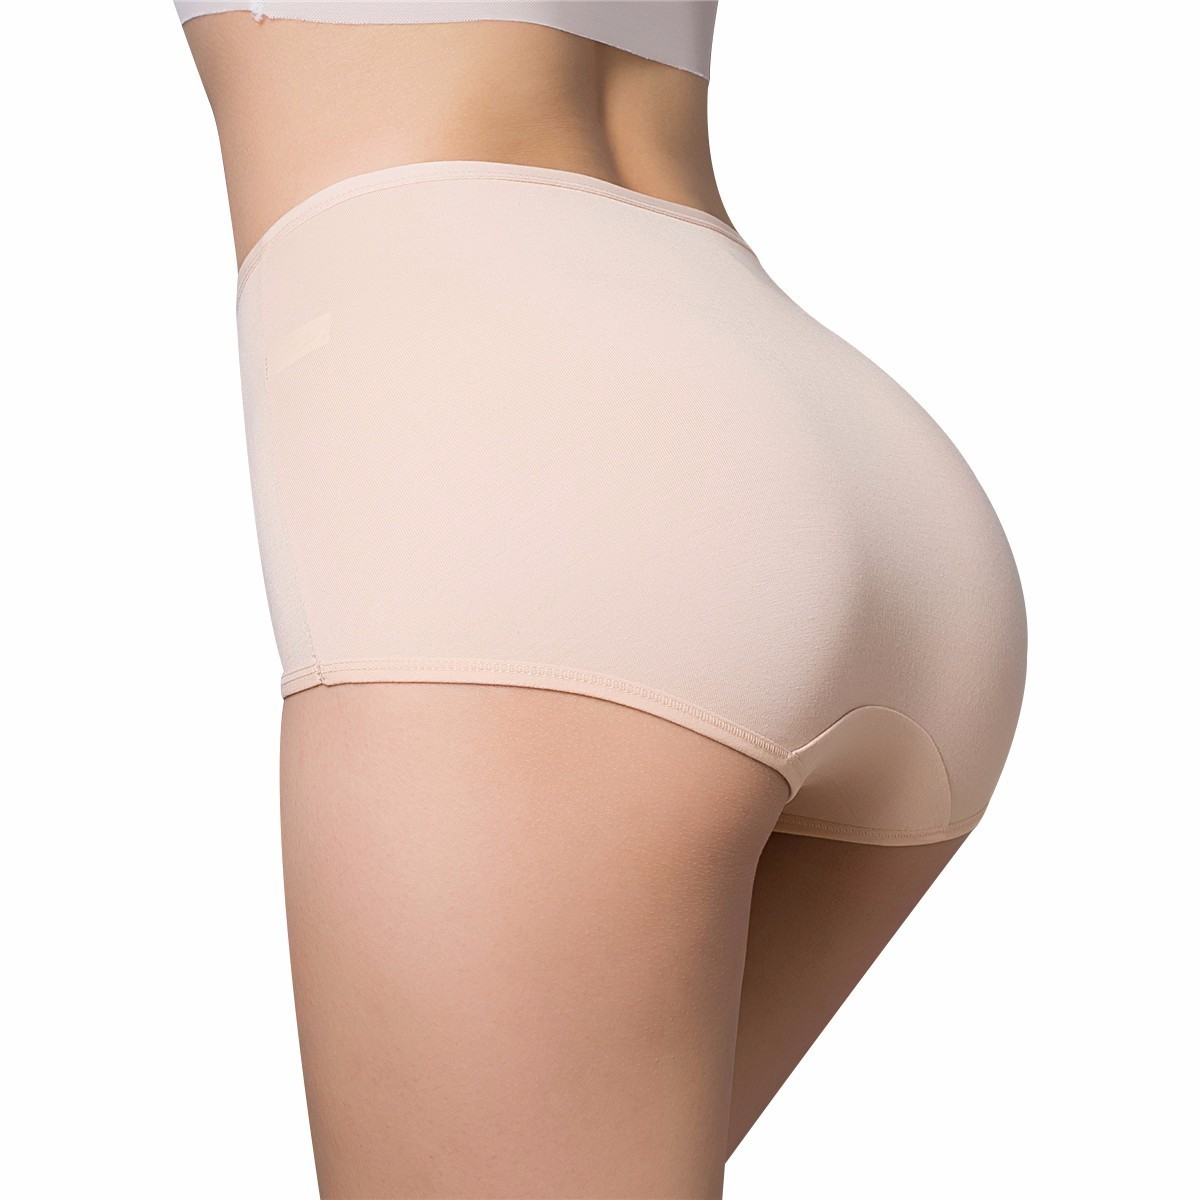 2019 Winte  Intimates Women's Panties  Ma'am High Waist Triangle Underpants  Non-trace Seamless  Sexy Underwear Natural Briefs